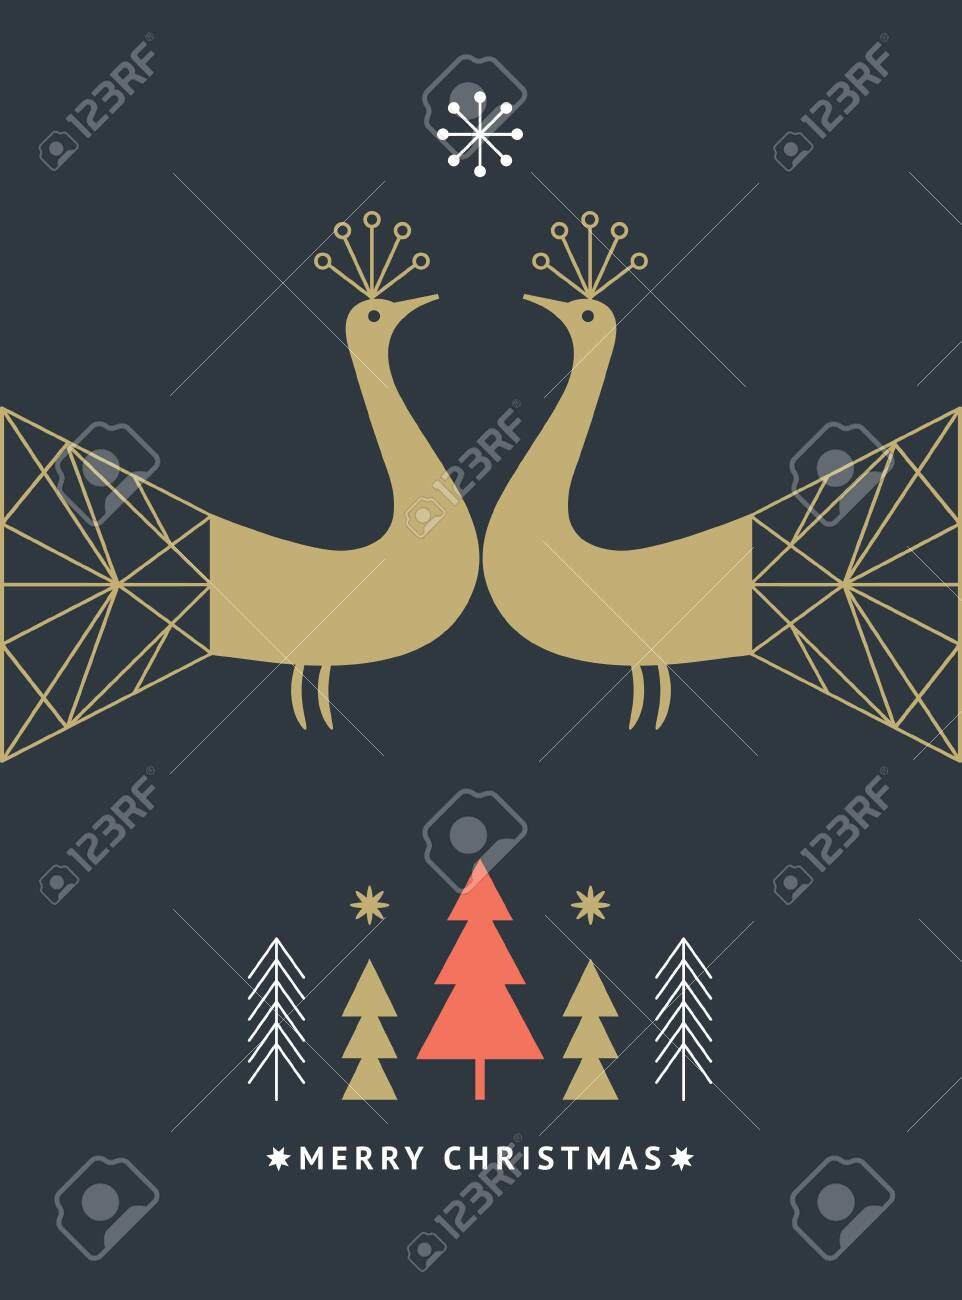 Greeting card Two fairy birds with big tails in geometric style